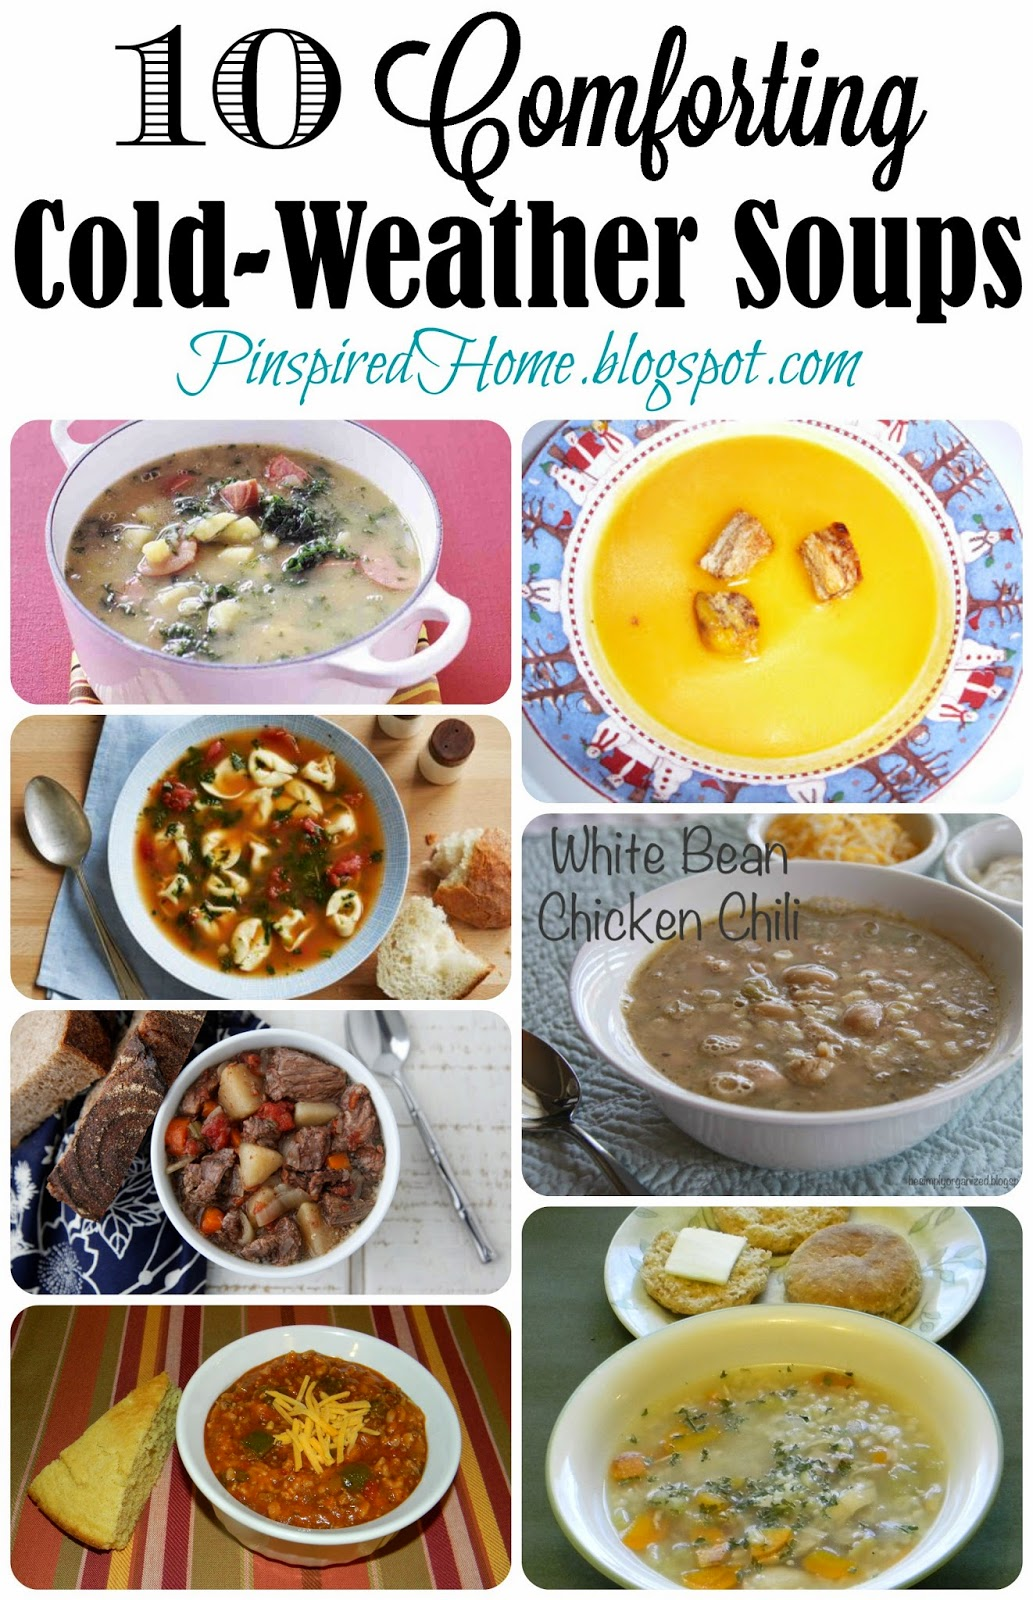 http://pinspiredhome.blogspot.com/2014/10/our-10-favorite-cold-weather-soups.html